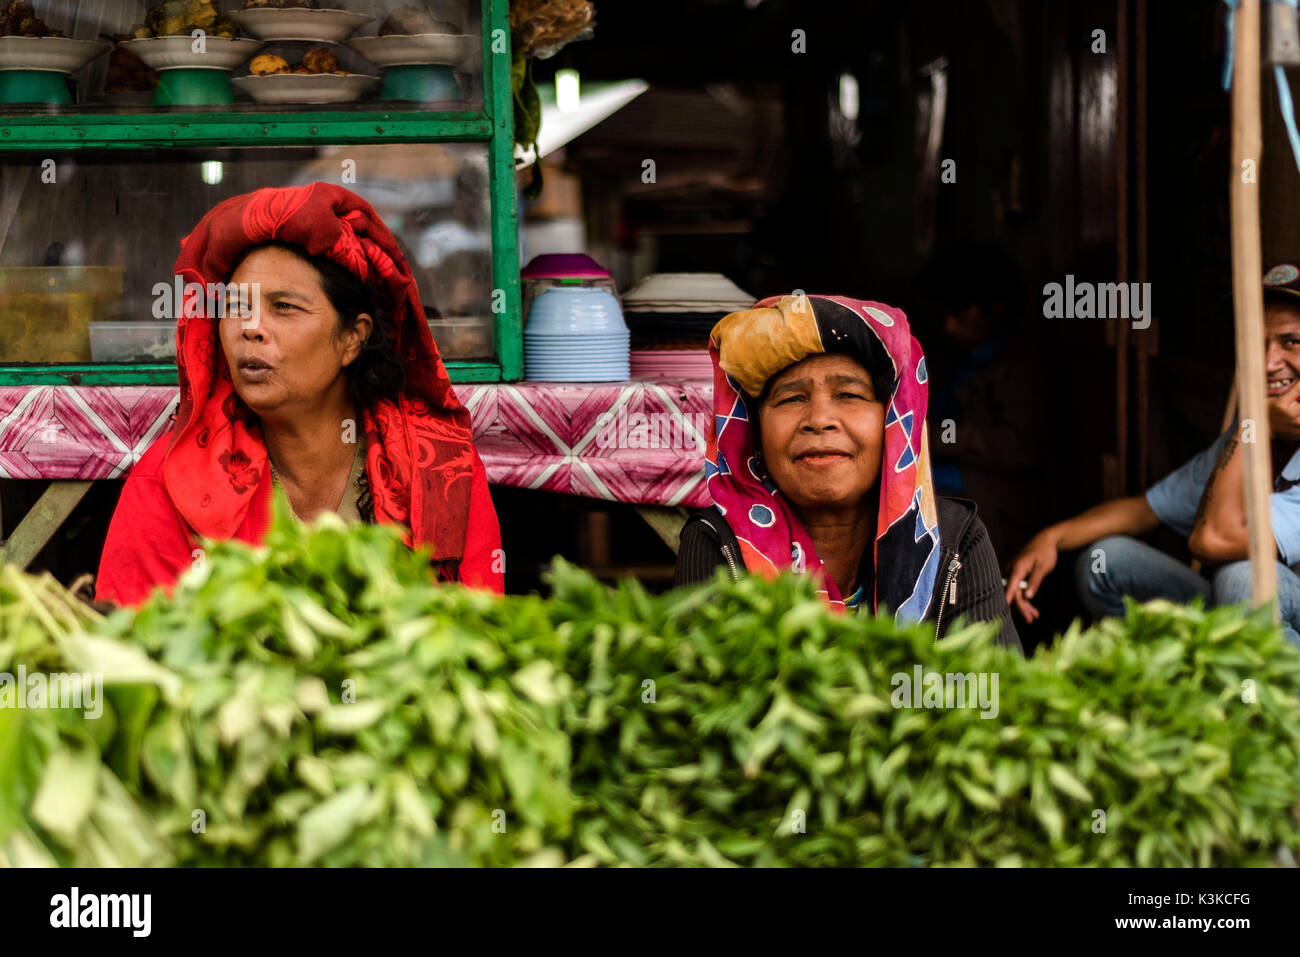 Two old market women in her vegetable stall, in traditional clothes of the Batak ethnic group. In the background there grins a smoking man. Recorded at the market in Berastagi on Sumatra, Indonesia. - Stock Image